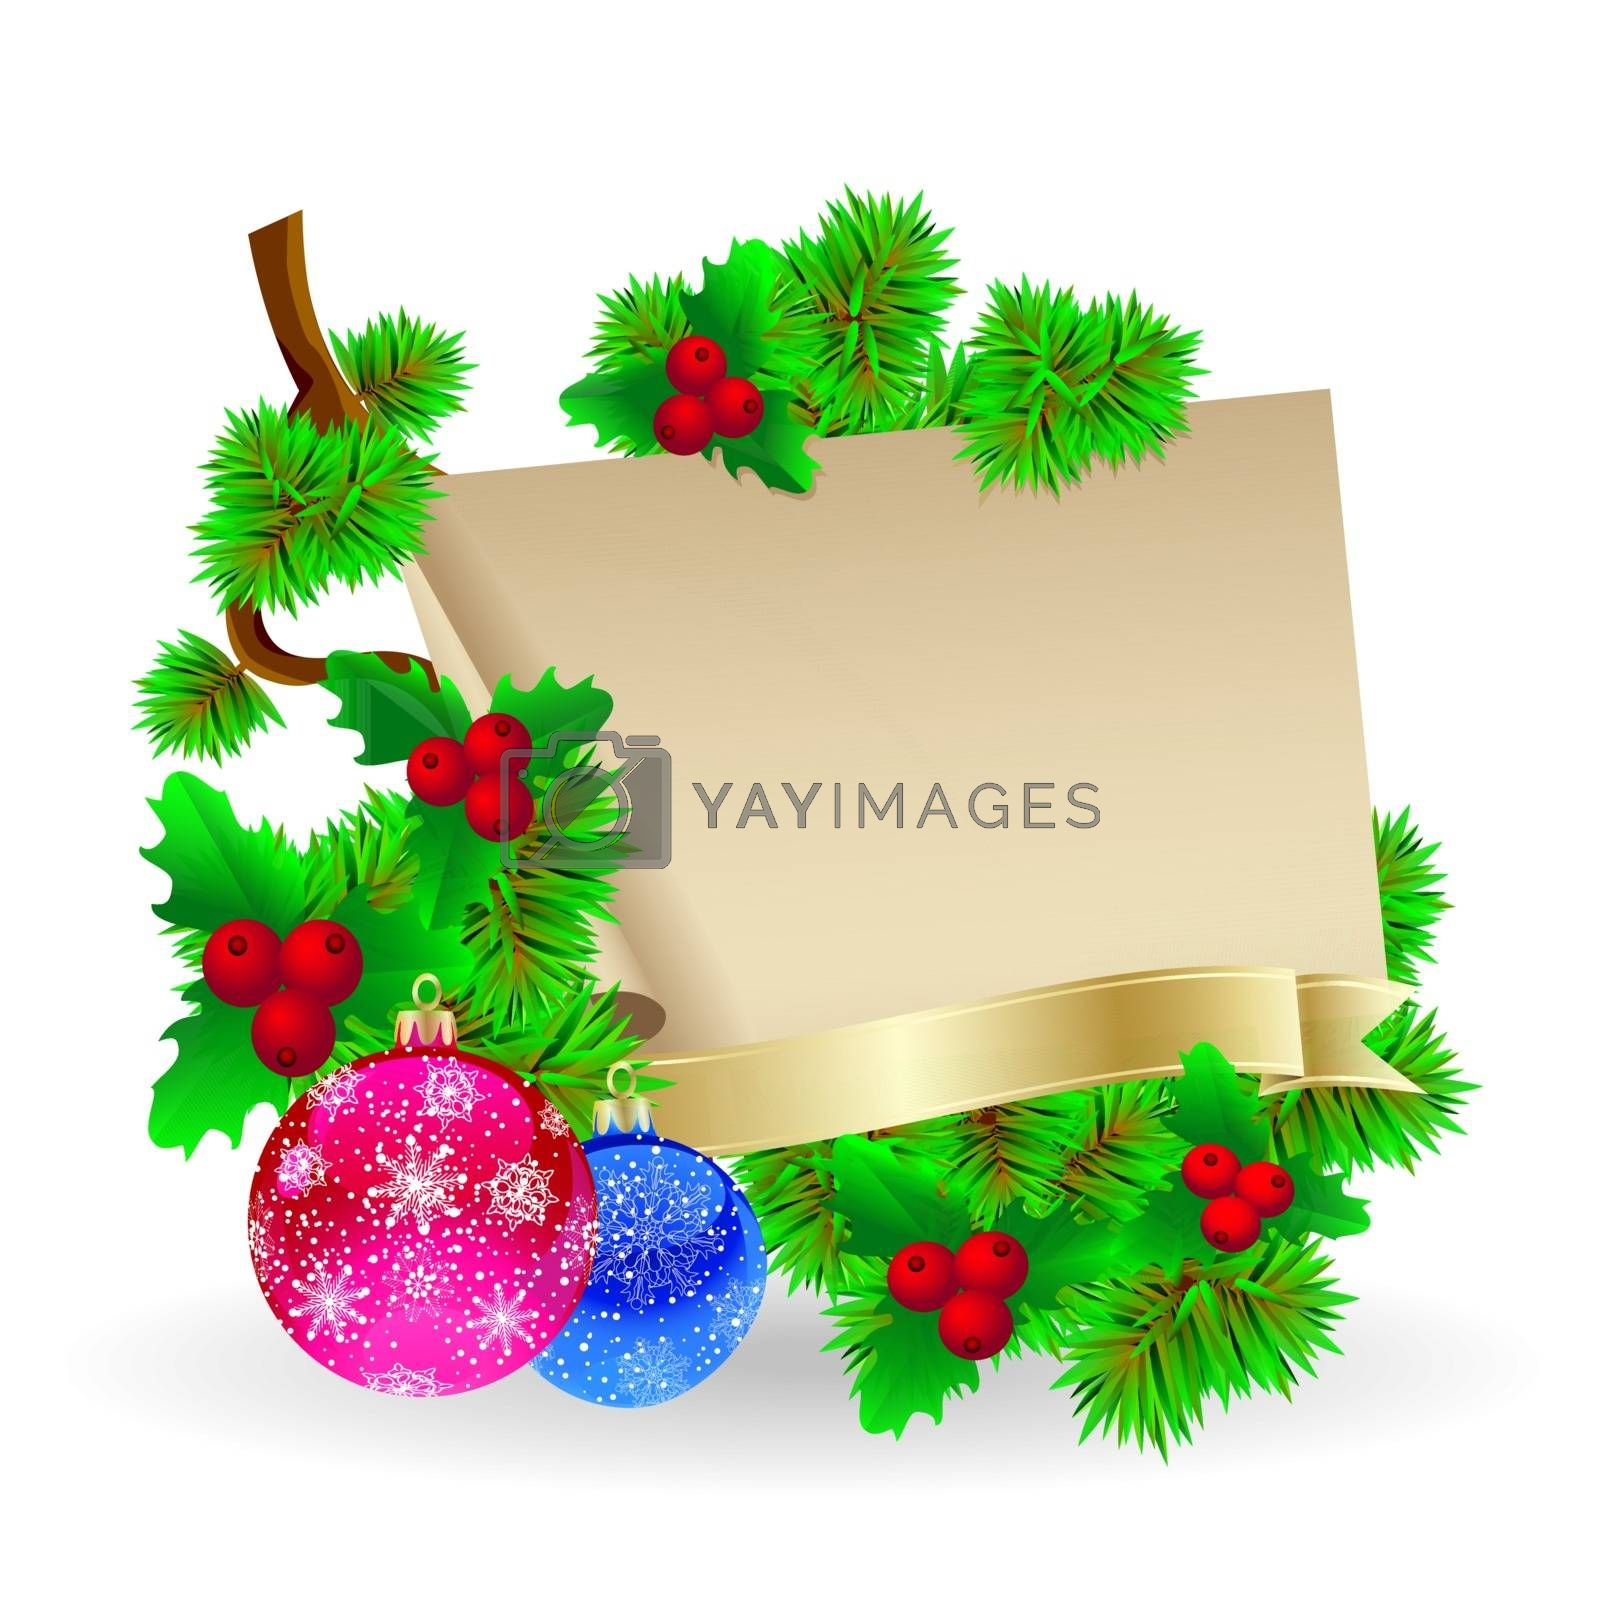 Festive composition of a sheet of paper for gifts and Christmas decorations.